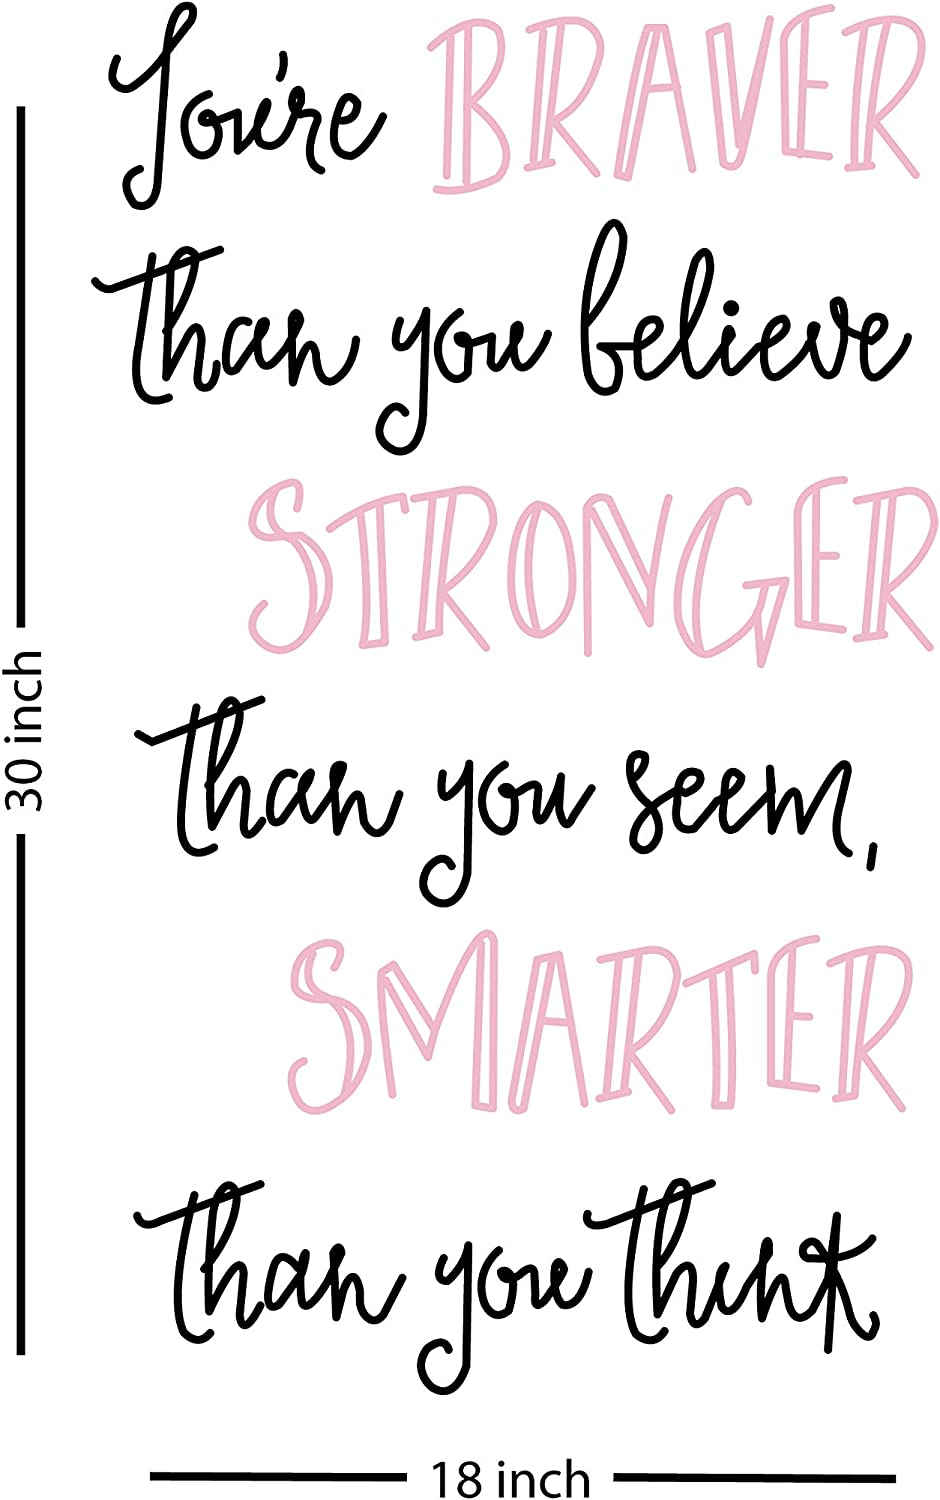 Fabulous Décor: YOU'RE BRAVER THAN YOU BELIEVE STRONGER THAN YOU SEEM AND SMARTER THAN YOU THINK Decal Inspirational Vinyl Sticker Wall art Quote living room, office, kids, dorm 17.5Wx30H (Pink&Black)